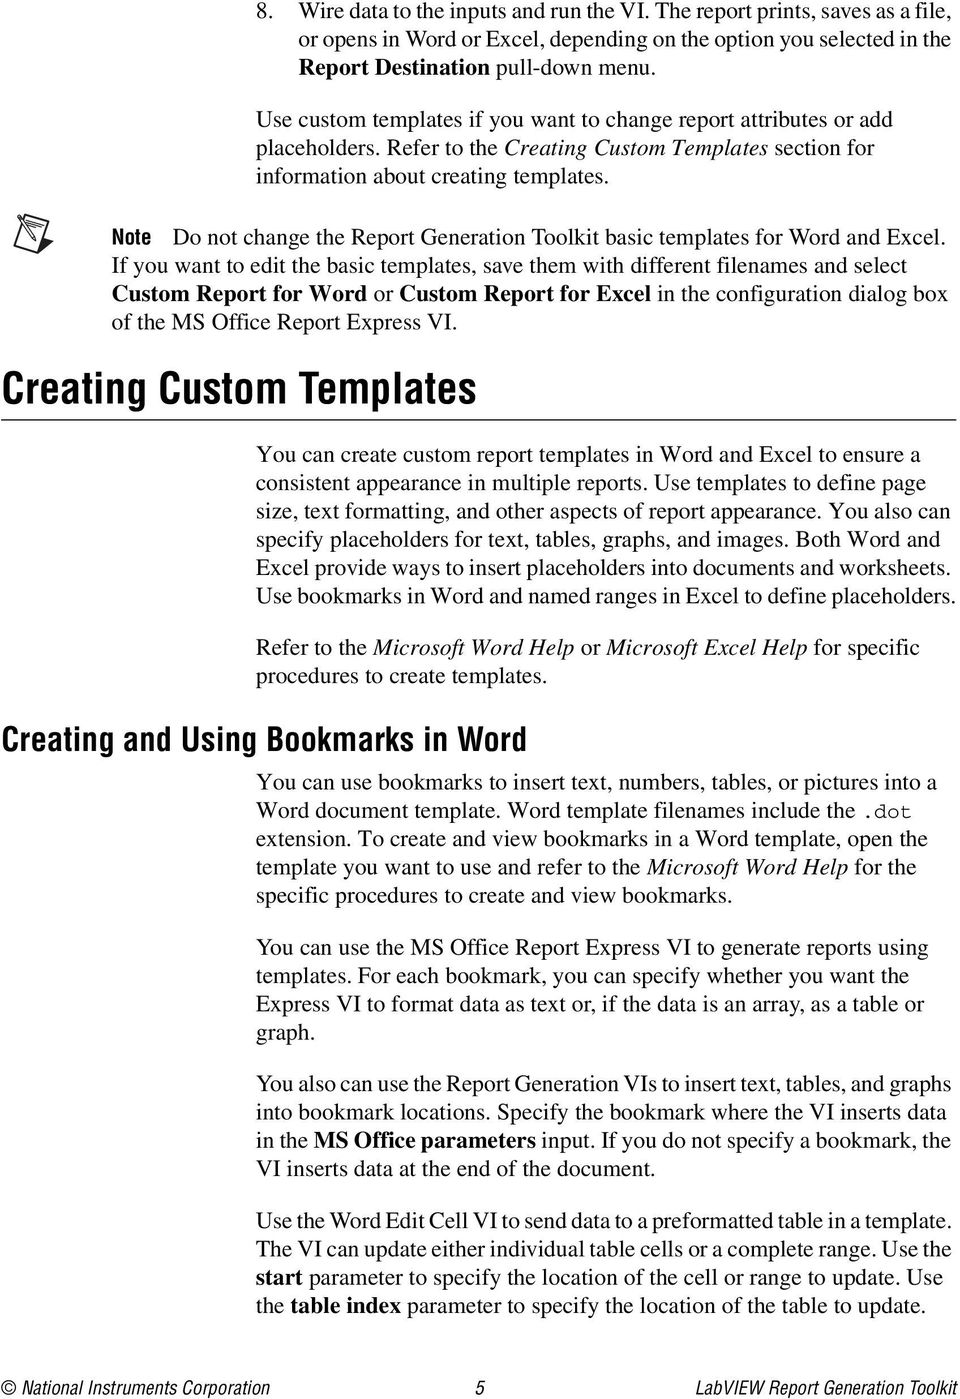 Types Of Sentences According To Structure Worksheets Pdf  How To Make A Business Card Template In Word  Forms  Cell Part Worksheet Word with 4th Grade Social Studies Map Skills Worksheets Word Office Document Templates Doc  Microsoft Word Template  Comparing Whole Numbers Worksheets